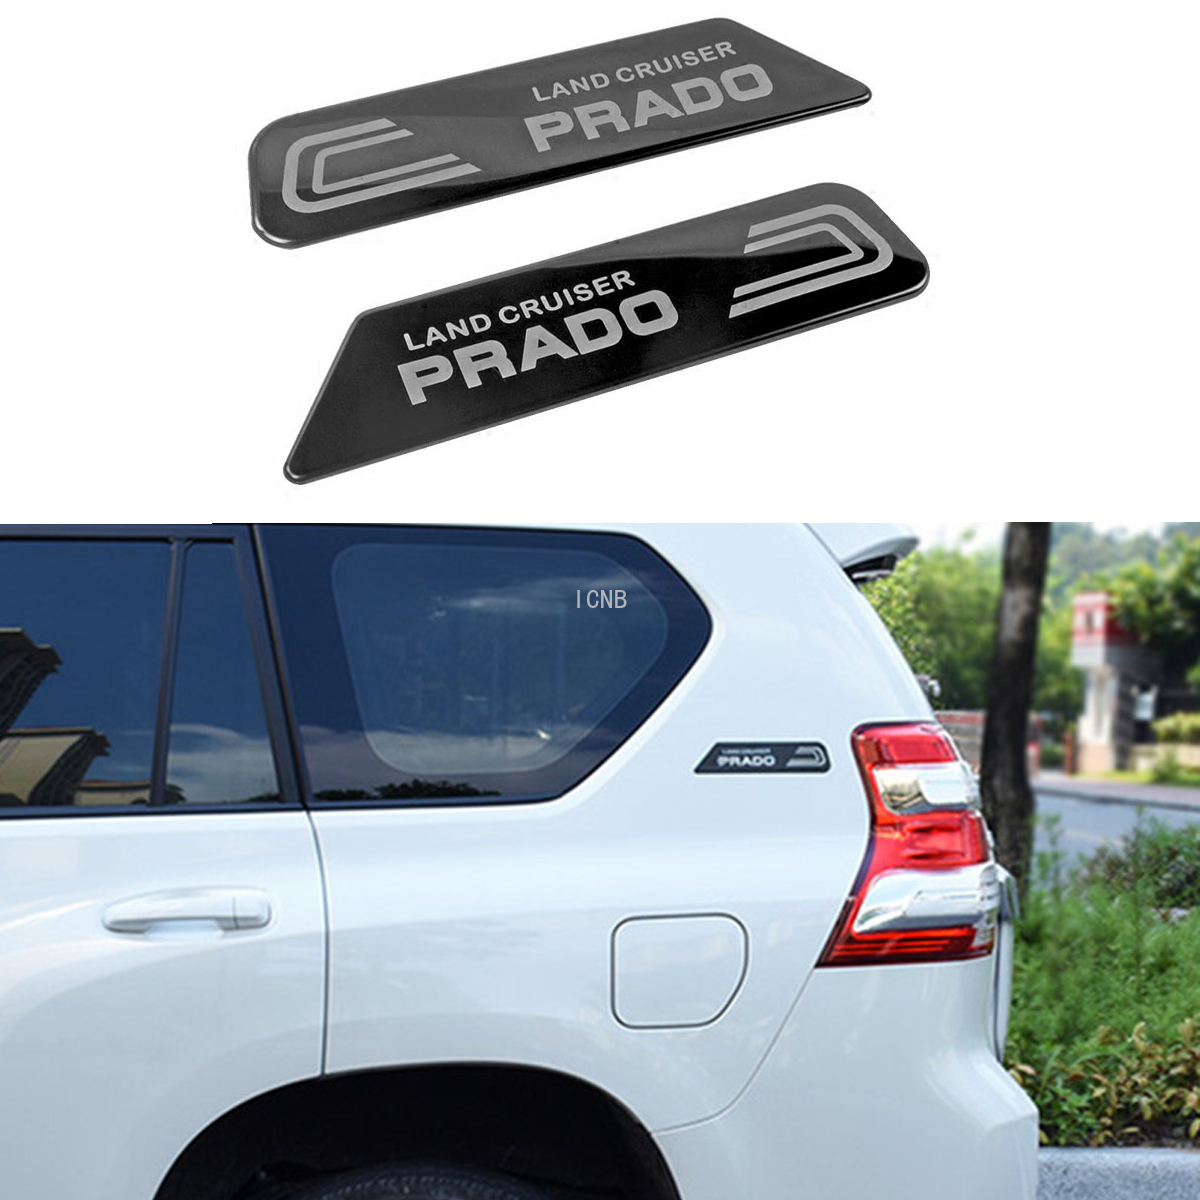 2PCS/set Stainless Steel Body Stickers for <font><b>Toyota</b></font> <font><b>Land</b></font> <font><b>Cruiser</b></font> <font><b>Prado</b></font> <font><b>120</b></font> 150 2003-2009 2010-2013 2014 2015 2016-2019 Accessories image